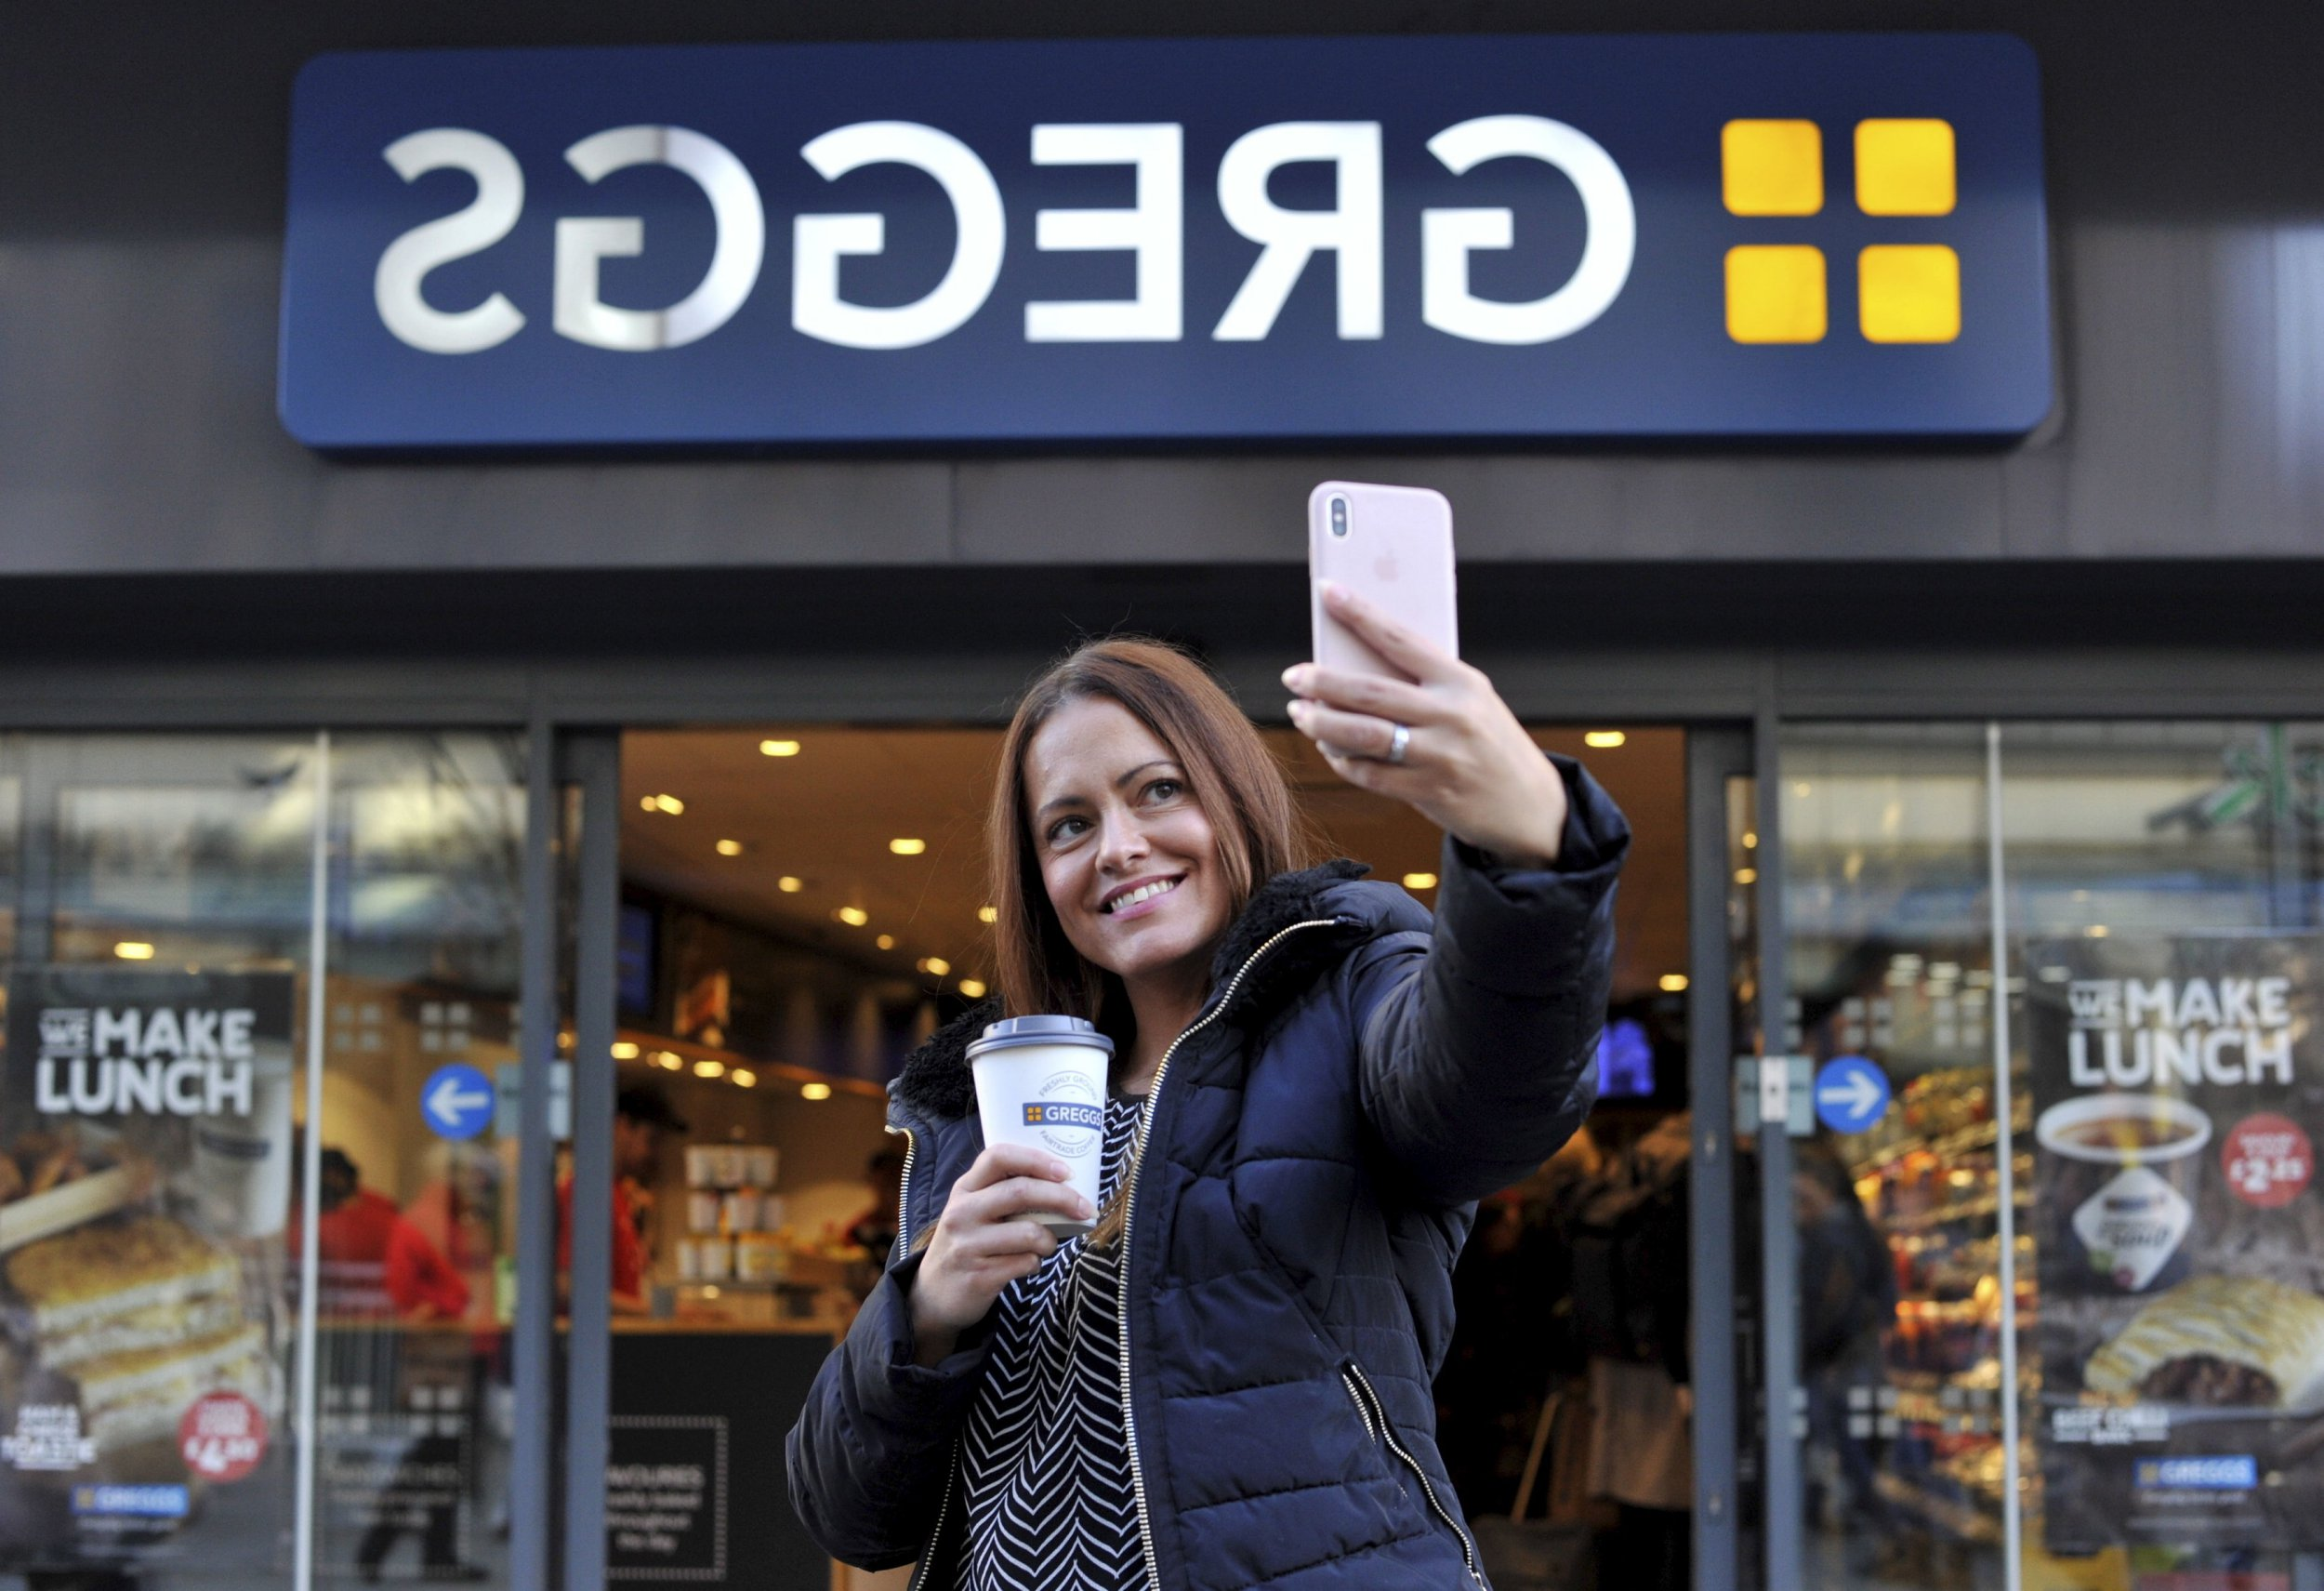 Handout photo issued by Greggs of customer Jennifer Cornell taking a selfie with the new backwards sign at Greggs bakery on Northumberland Street in Newcastle upon Tyne, which is a mirror image so the sign reads the correct way when reflected on the famous Fenwick Christmas window opposite. PRESS ASSOCIATION Photo. Issue date: Friday November 2, 2018. The Fenwick window is being unveiled on Friday evening and each year many thousands of North East families queue up to see the displays which are a seen by many shoppers as an essential part of Christmas. See PA story CONSUMER Greggs. Photo credit should read: Greggs/PA Wire NOTE TO EDITORS: This handout photo may only be used in for editorial reporting purposes for the contemporaneous illustration of events, things or the people in the image or facts mentioned in the caption. Reuse of the picture may require further permission from the copyright holder.